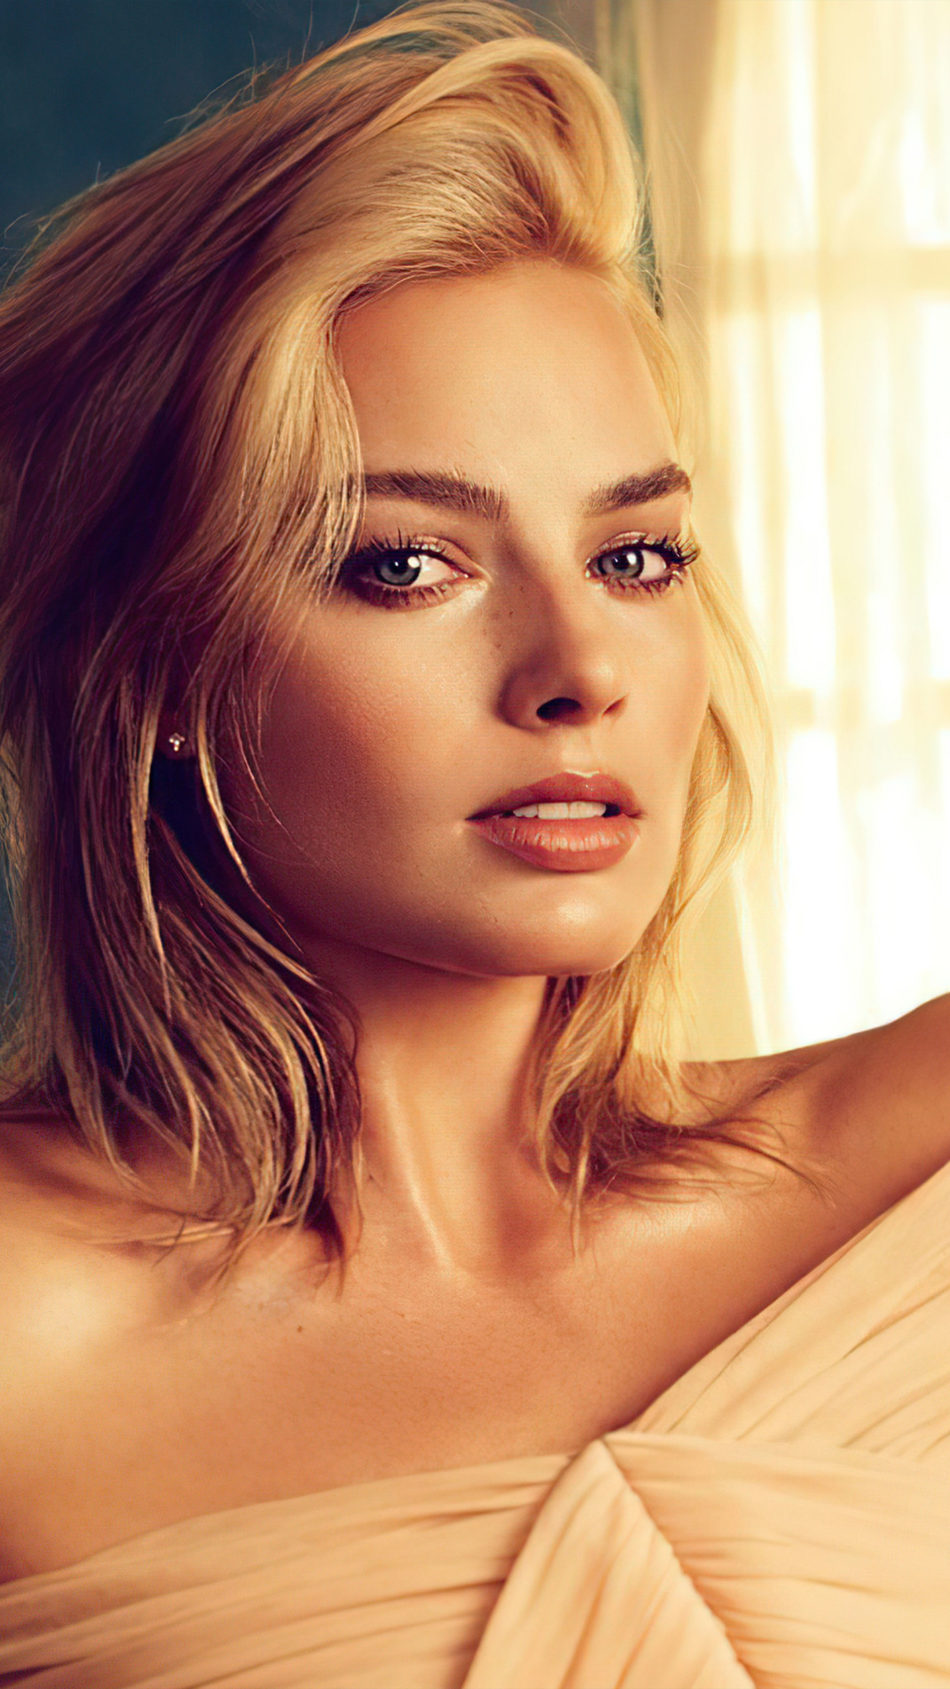 Actress Margot Robbie Blonde 2020 Photoshoot 4K Ultra HD Mobile Wallpaper